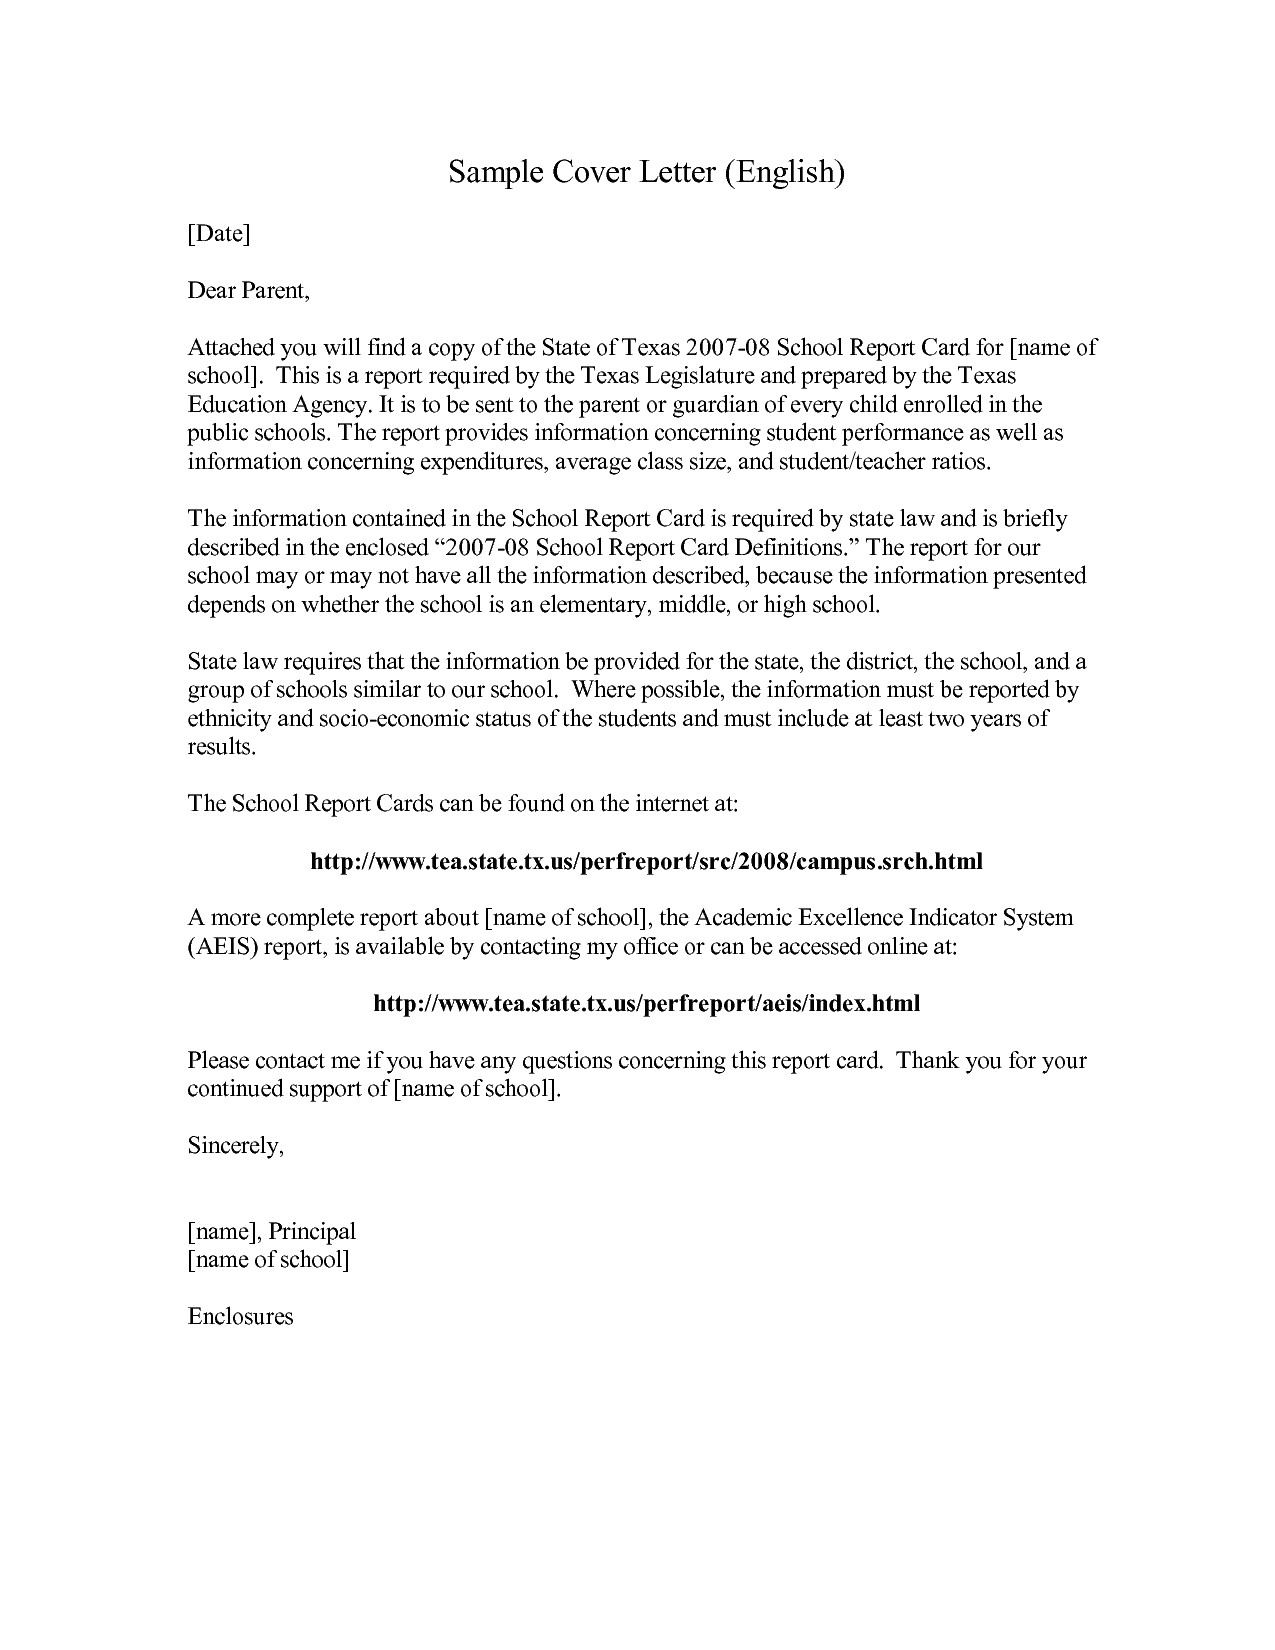 Cover Letter for English Paper order Your Own Writing Help now Expository Essay On